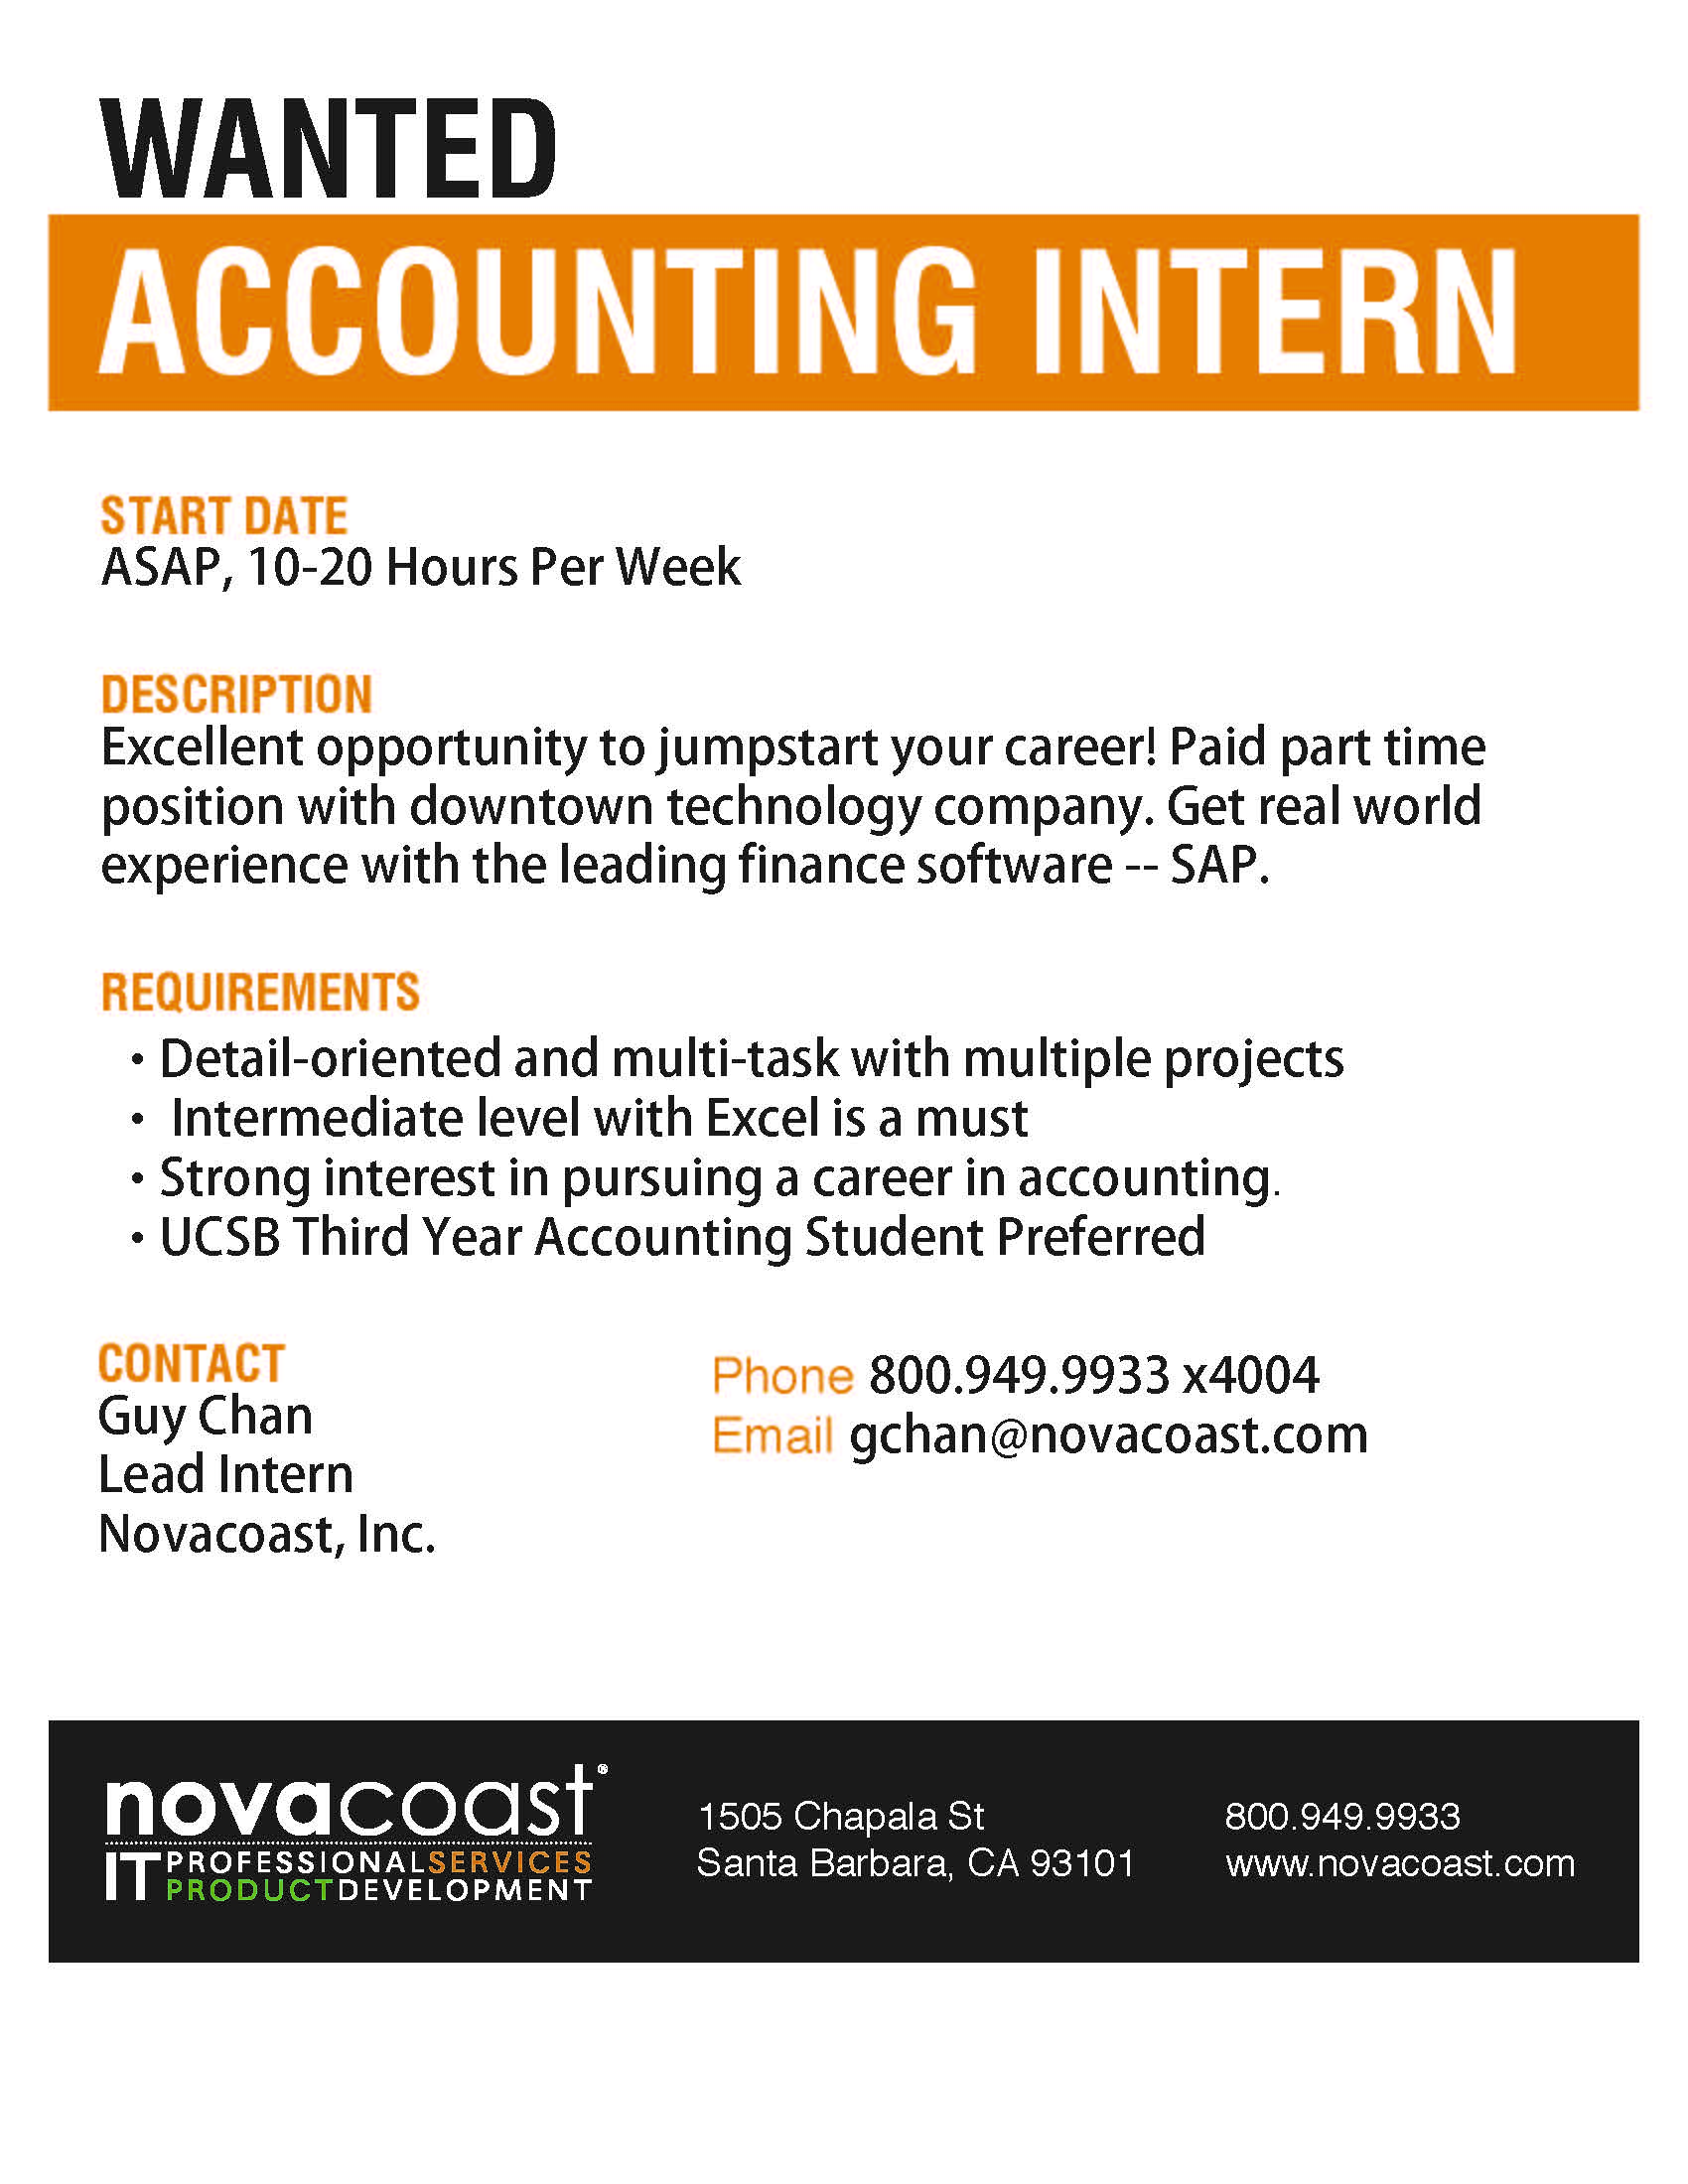 novocoast wanted accounting intern santa barbara career